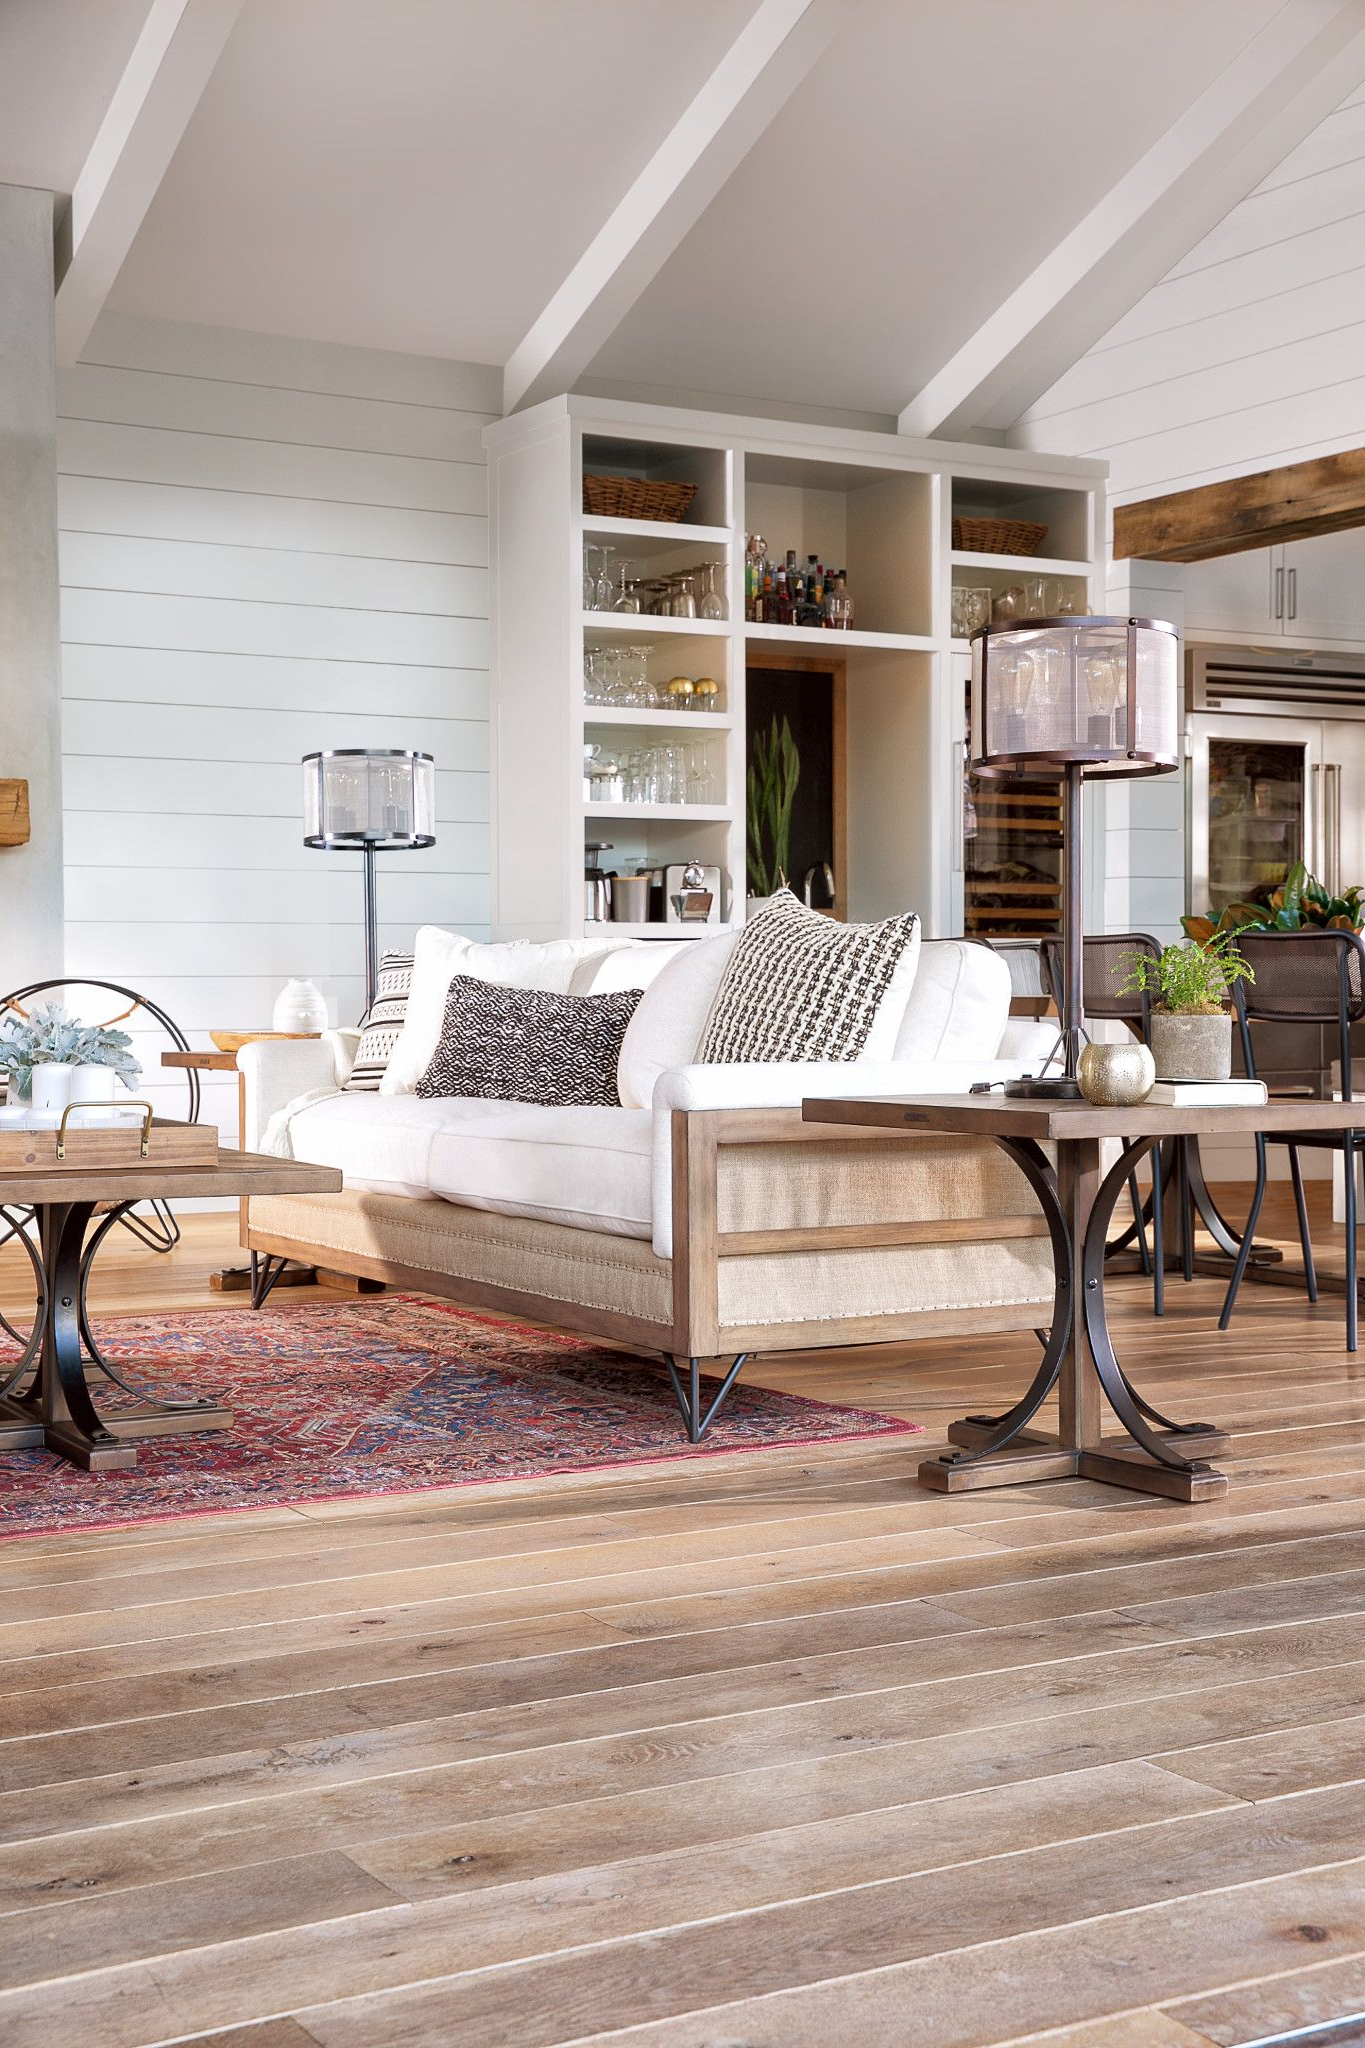 Latest Magnolia Home Paradigm Sofa Chairs By Joanna Gaines With Regard To Magnolia Home Paradigm Loveseatjoanna Gaines In (View 4 of 20)